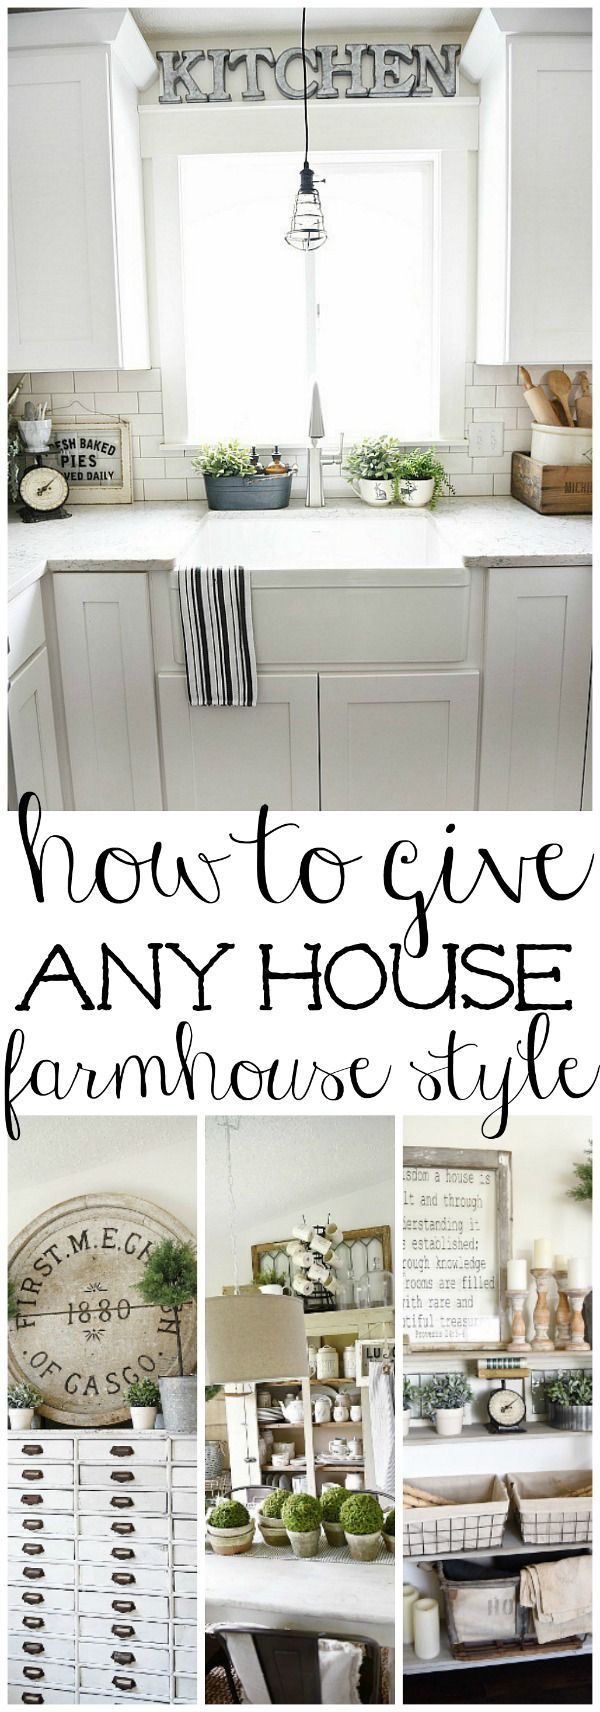 best 25+ kitchen letters ideas only on pinterest | farmhouse wall